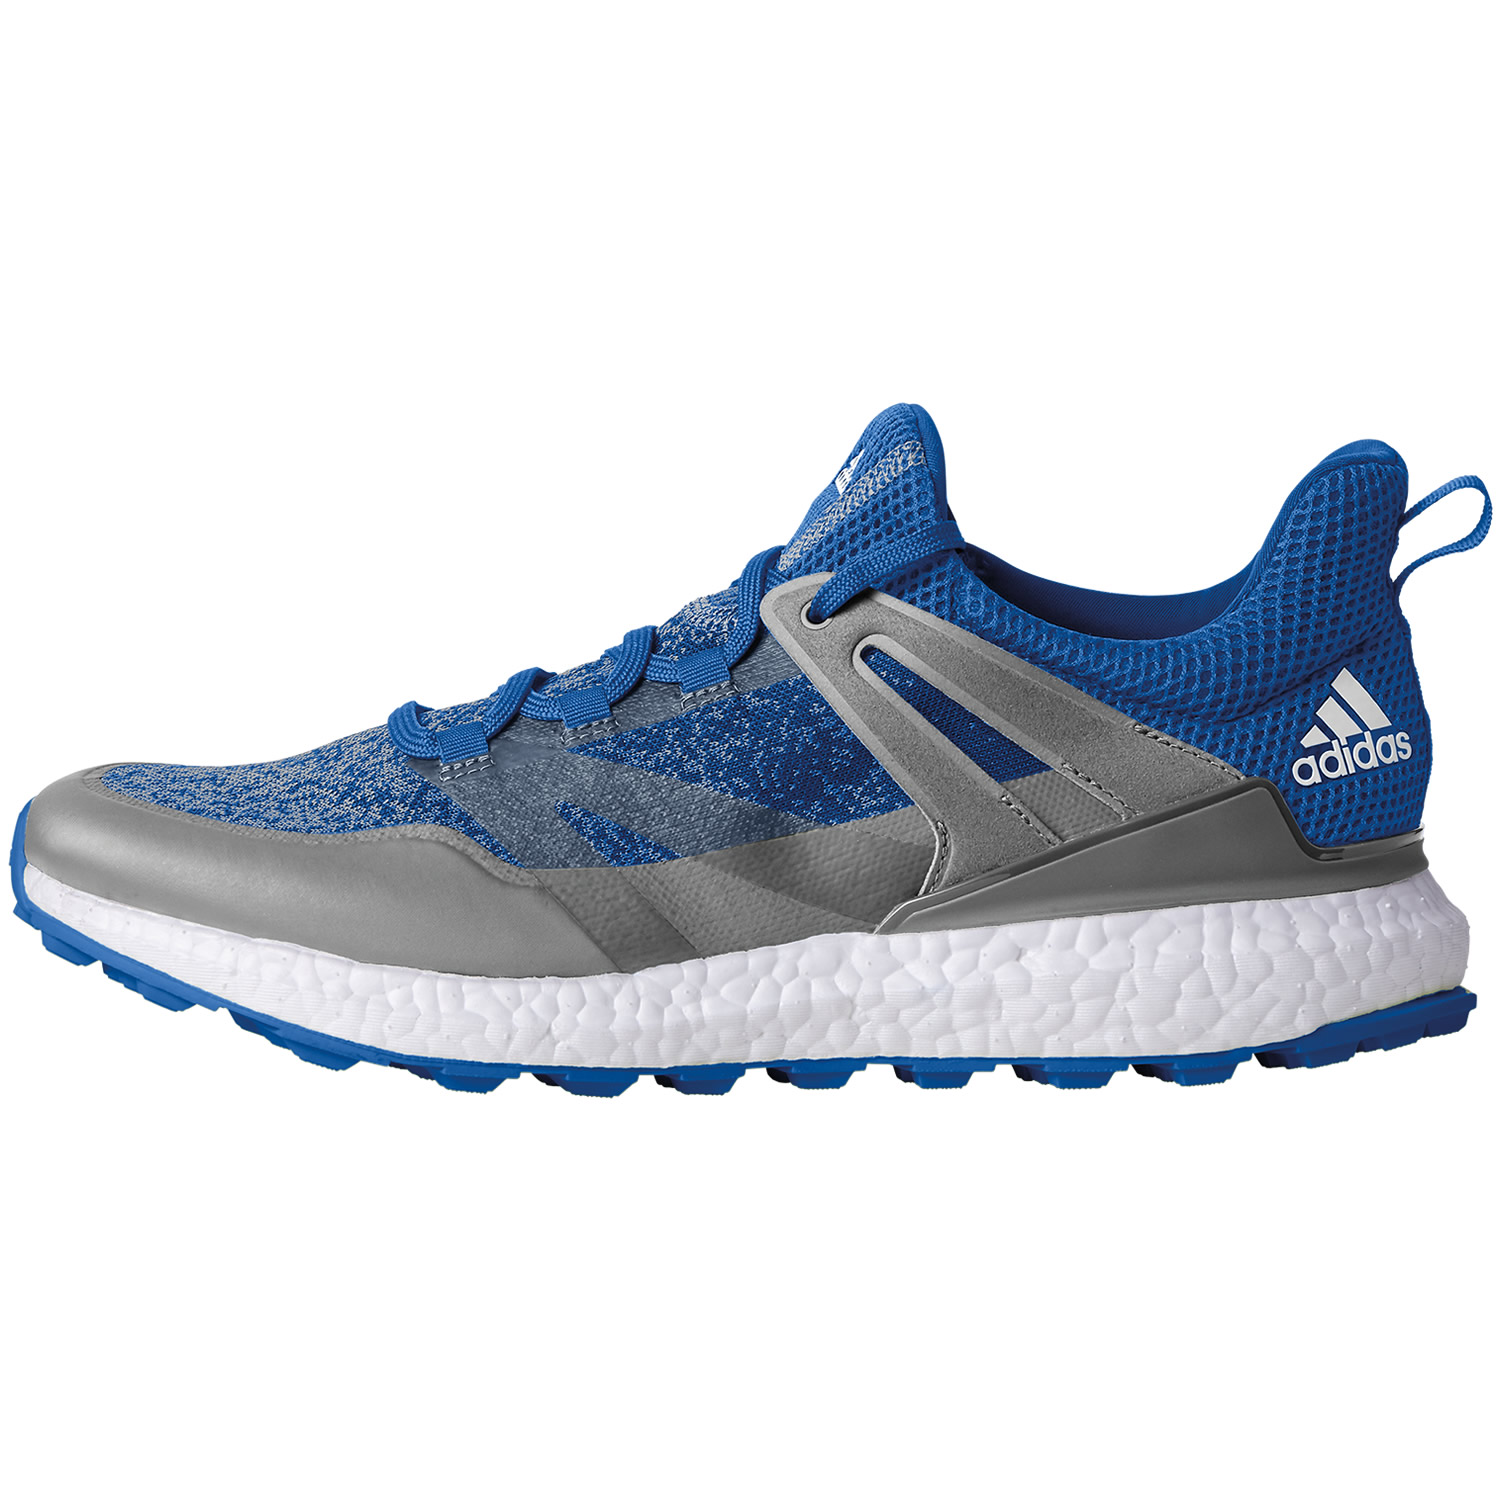 7276b714c Adidas Crossknit Boost Mens Spikeless Golf Shoes - Pick Size & Color ...